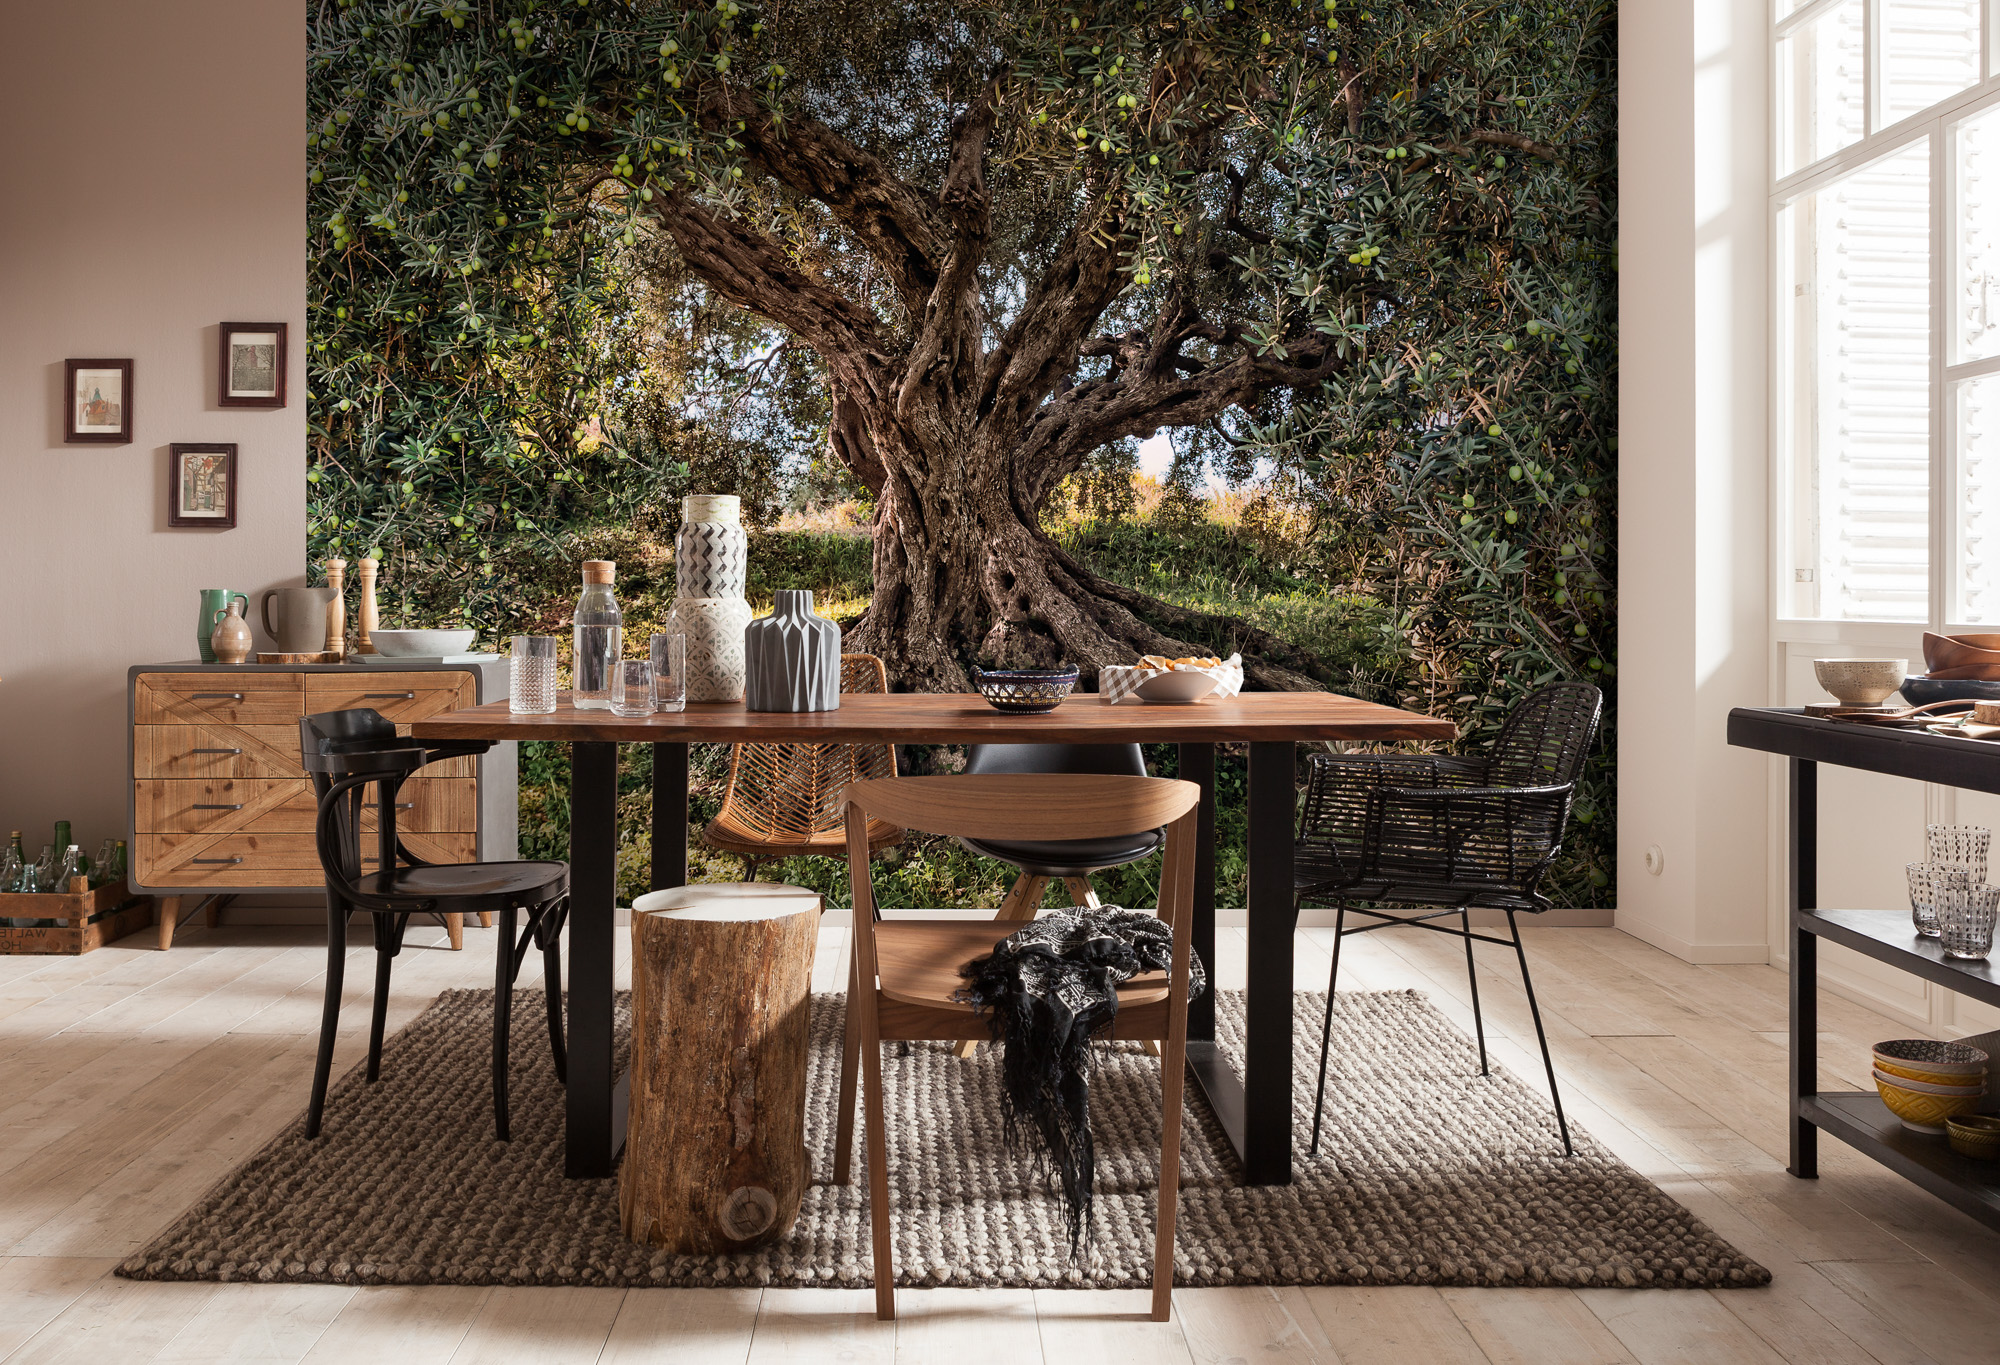 Kitchen with olive tree